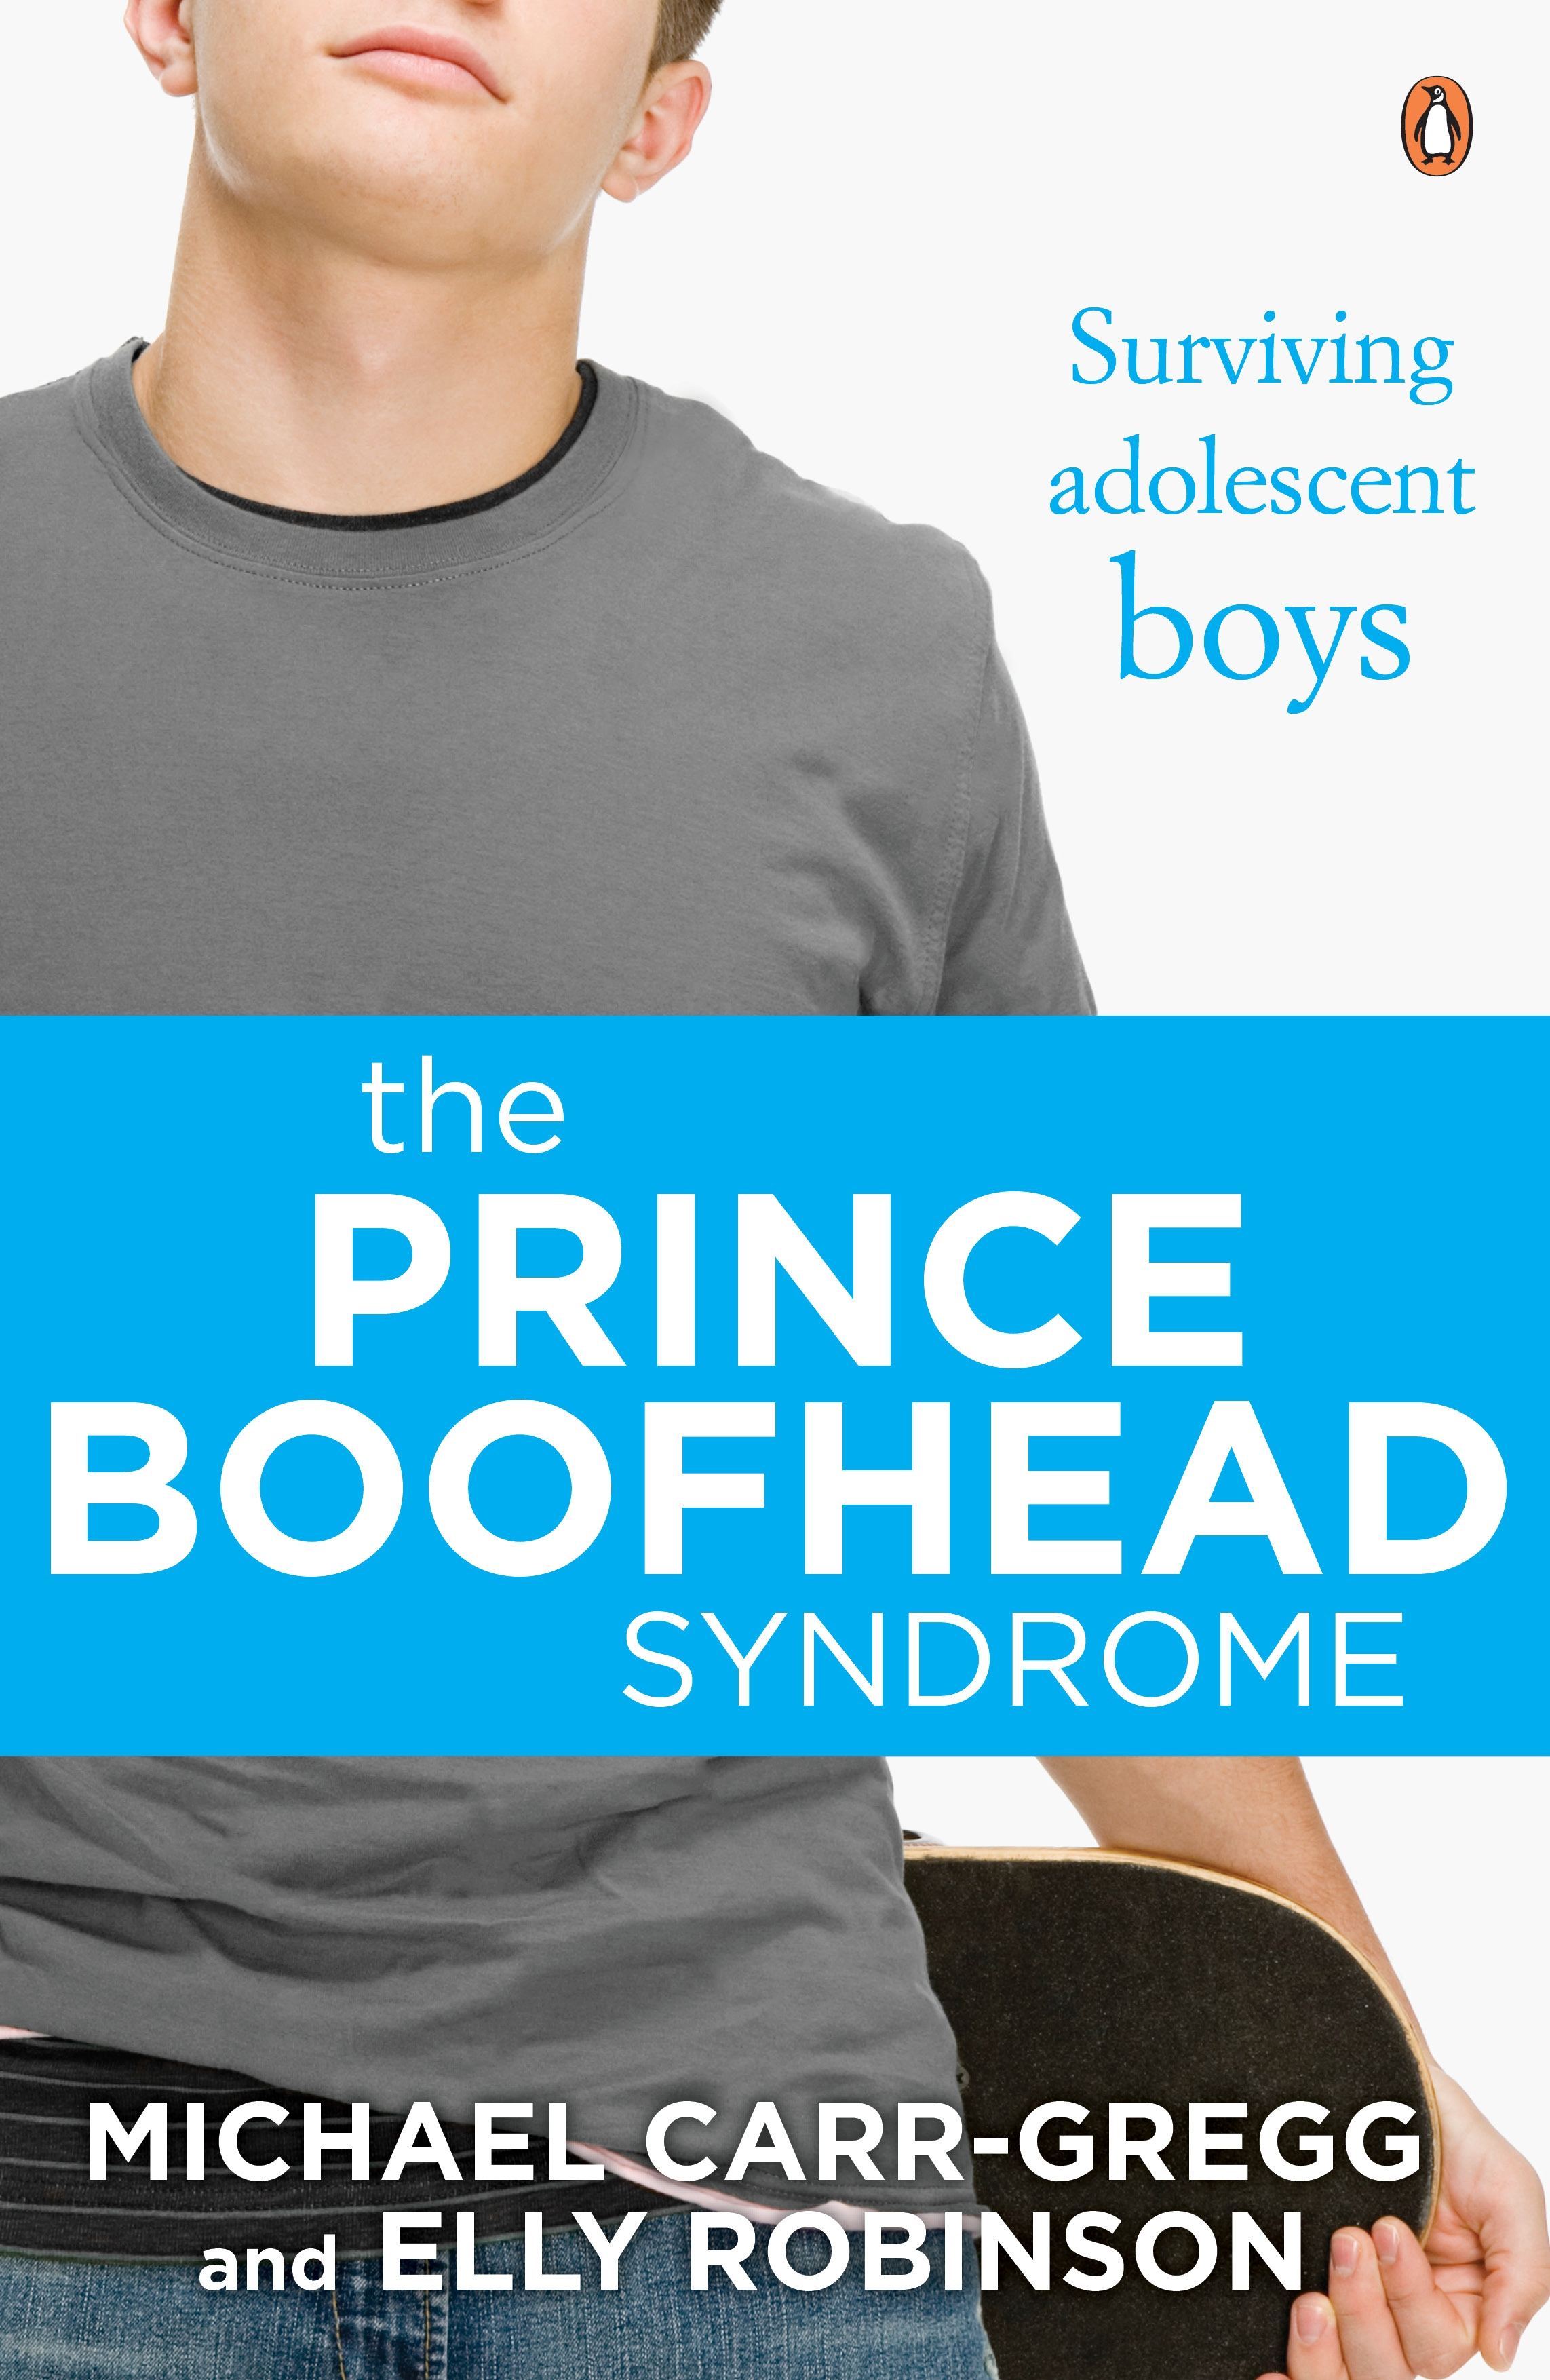 The Prince Boofhead Syndrome by Michael Carr-Gregg,Elly Robinson, ISBN: 9781760143503